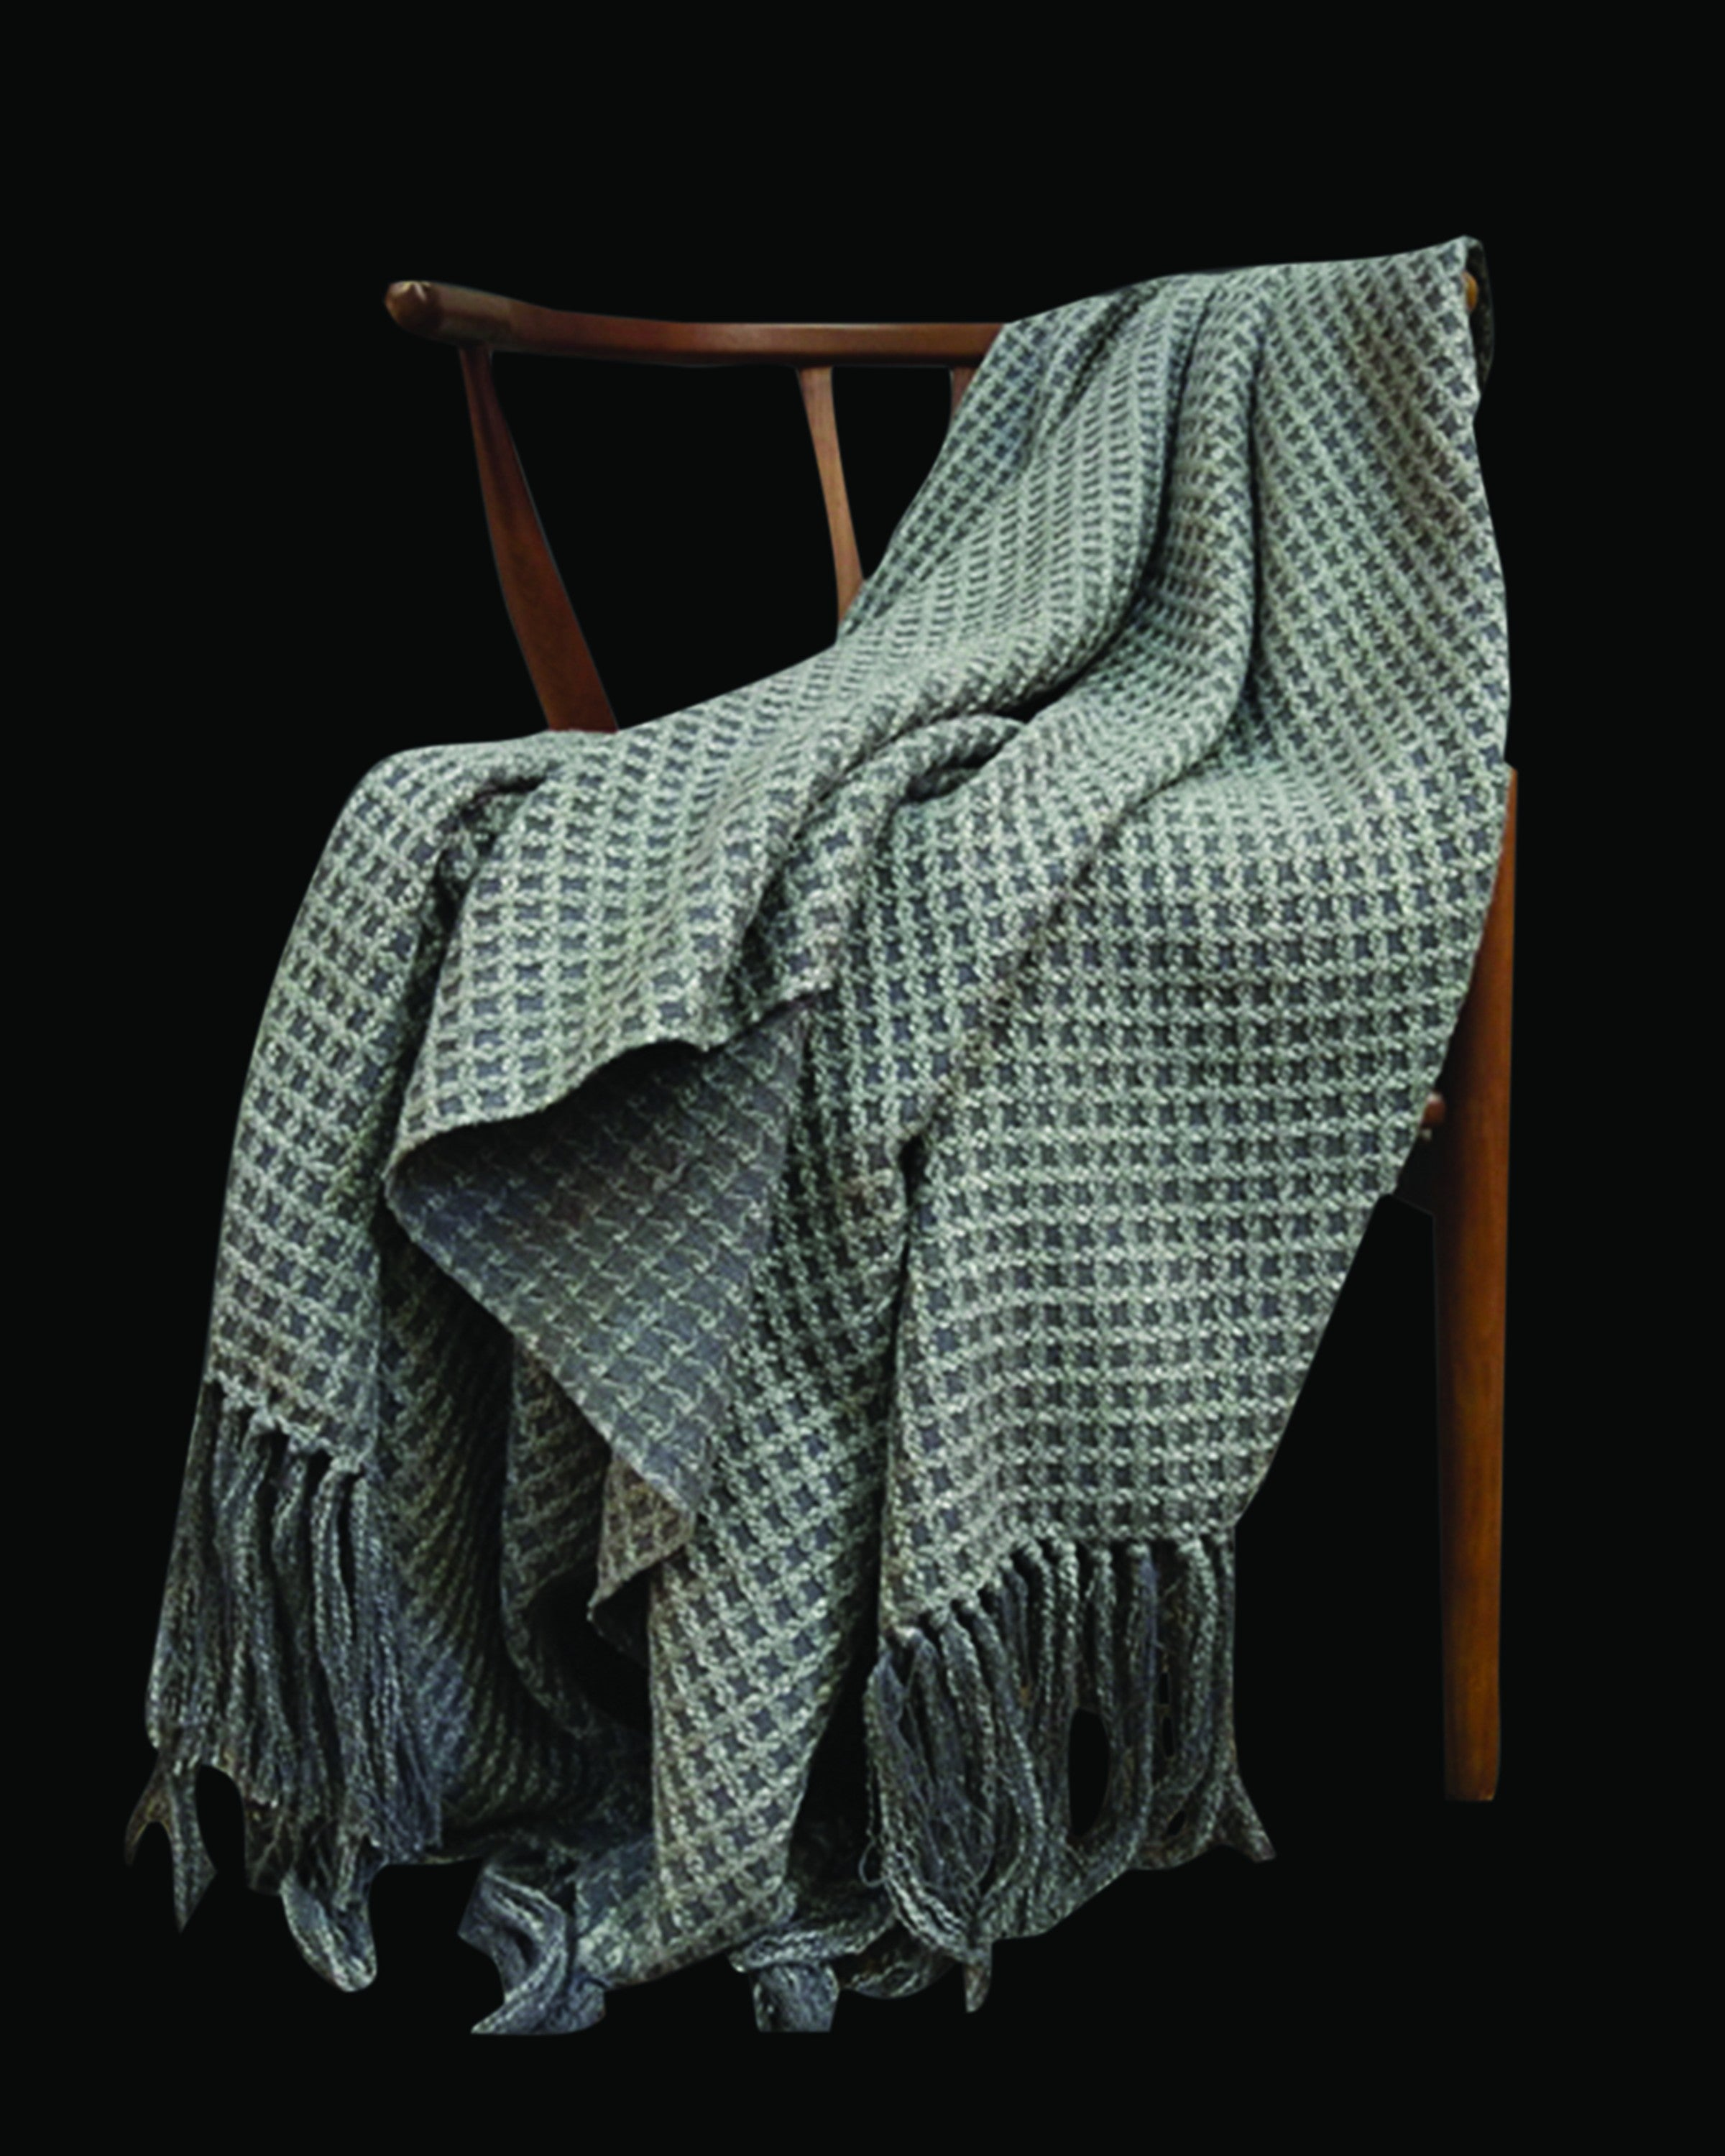 BERRY COTTON FABULOUS THROWS AND BLANKET-ANGIE HOMES ANGIE HOMES